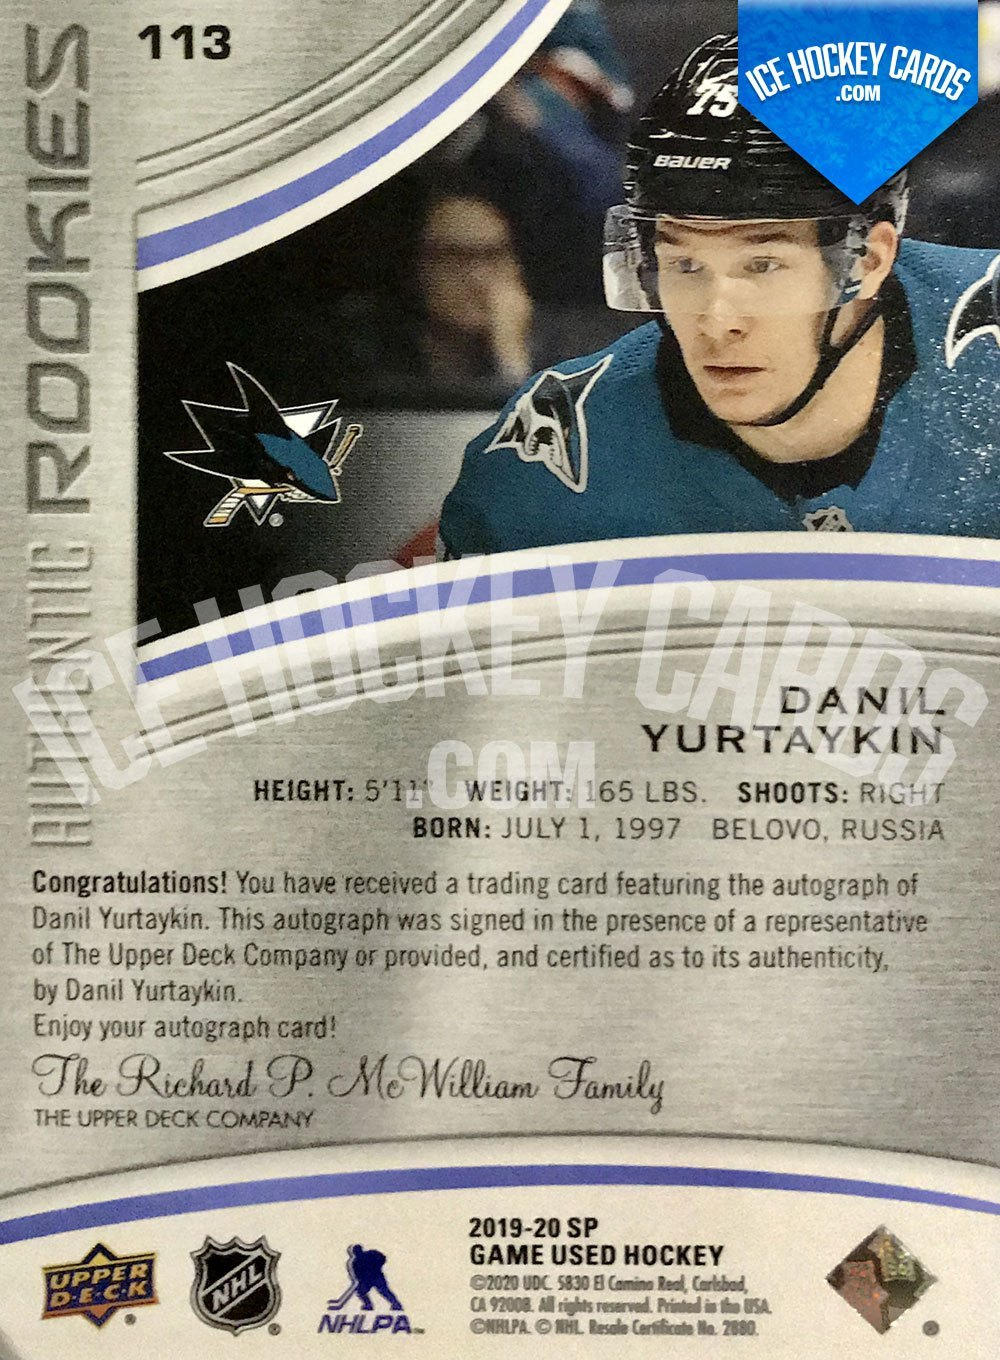 Upper Deck - SP Game Used 2019-20 - Danil Yurtaykin Authentic Rookies Auto RC back